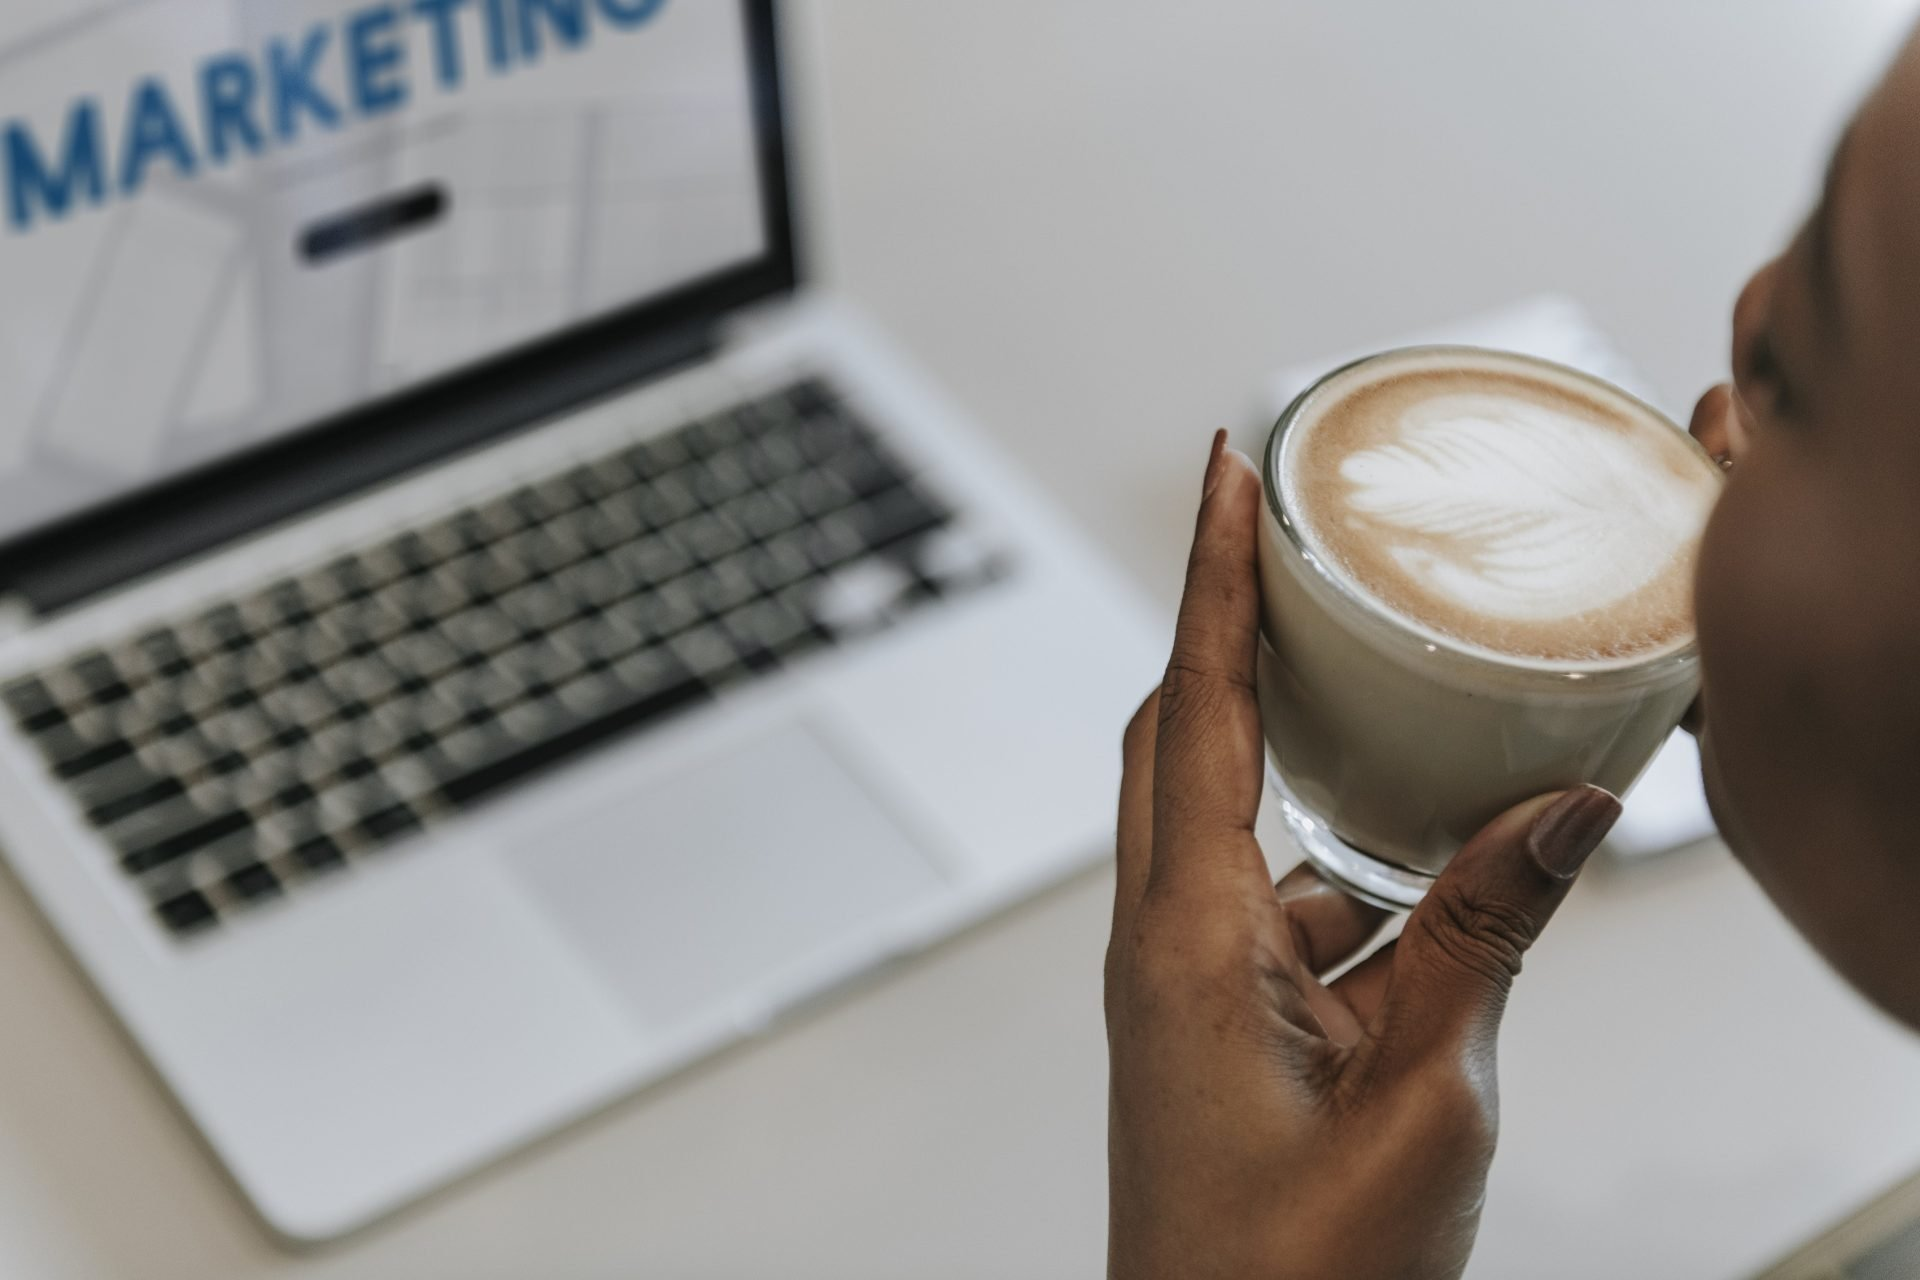 Woman sipping a cup of coffee while working